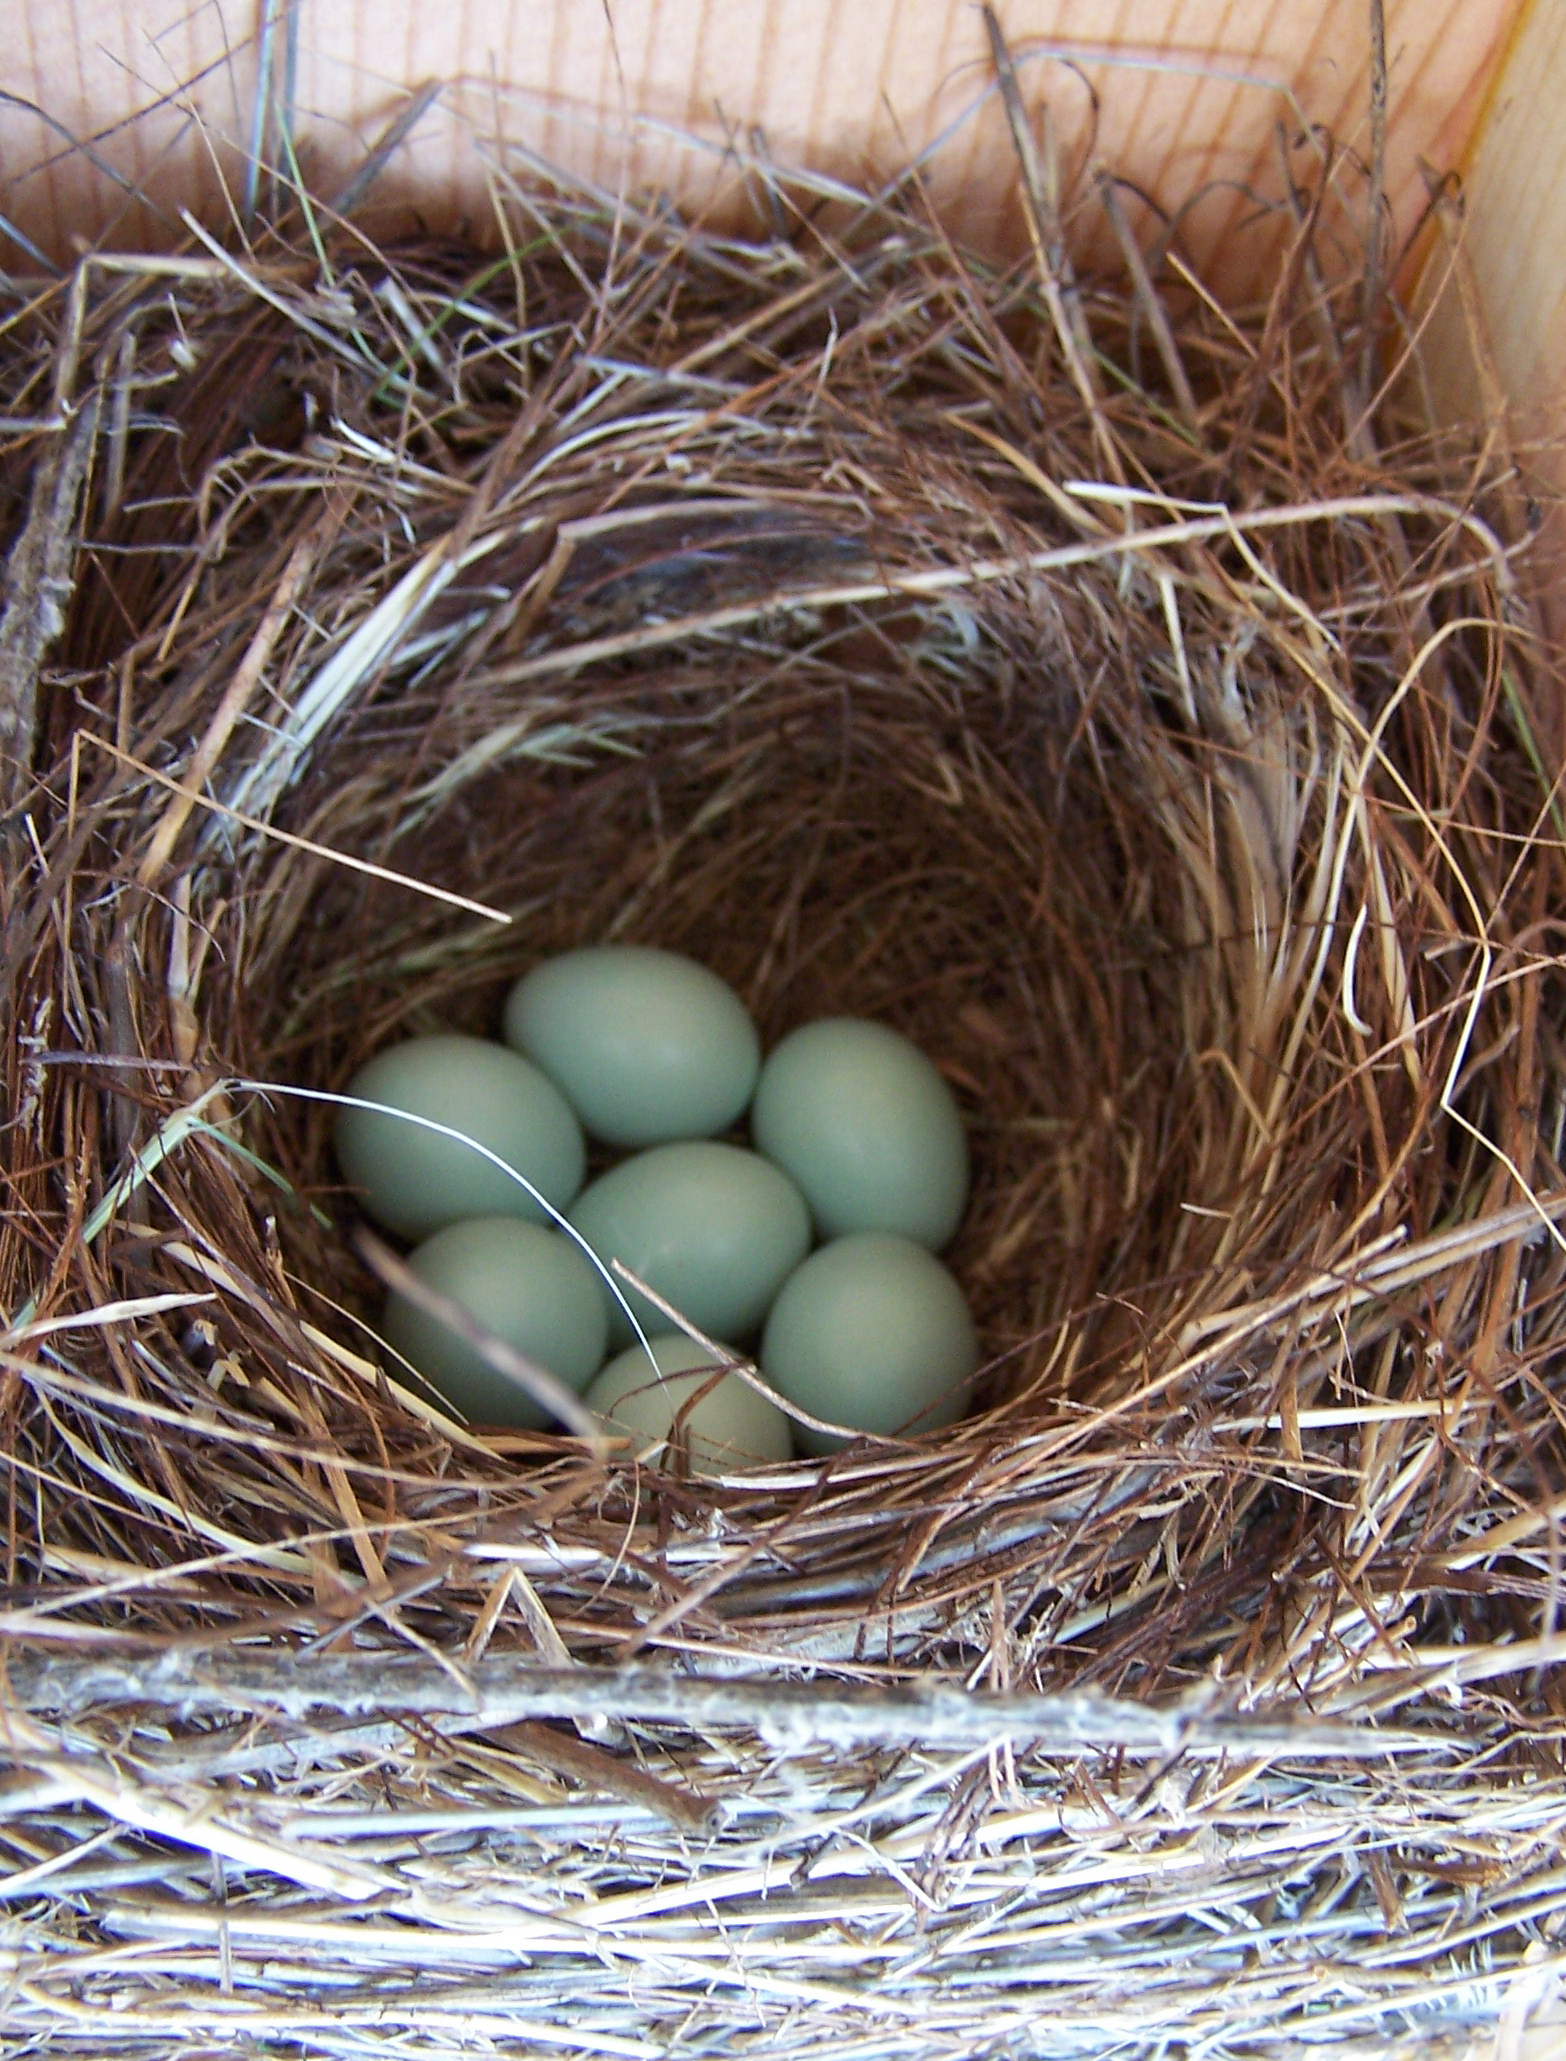 Western Bluebird nest with 7 eggs - fairly uncommon